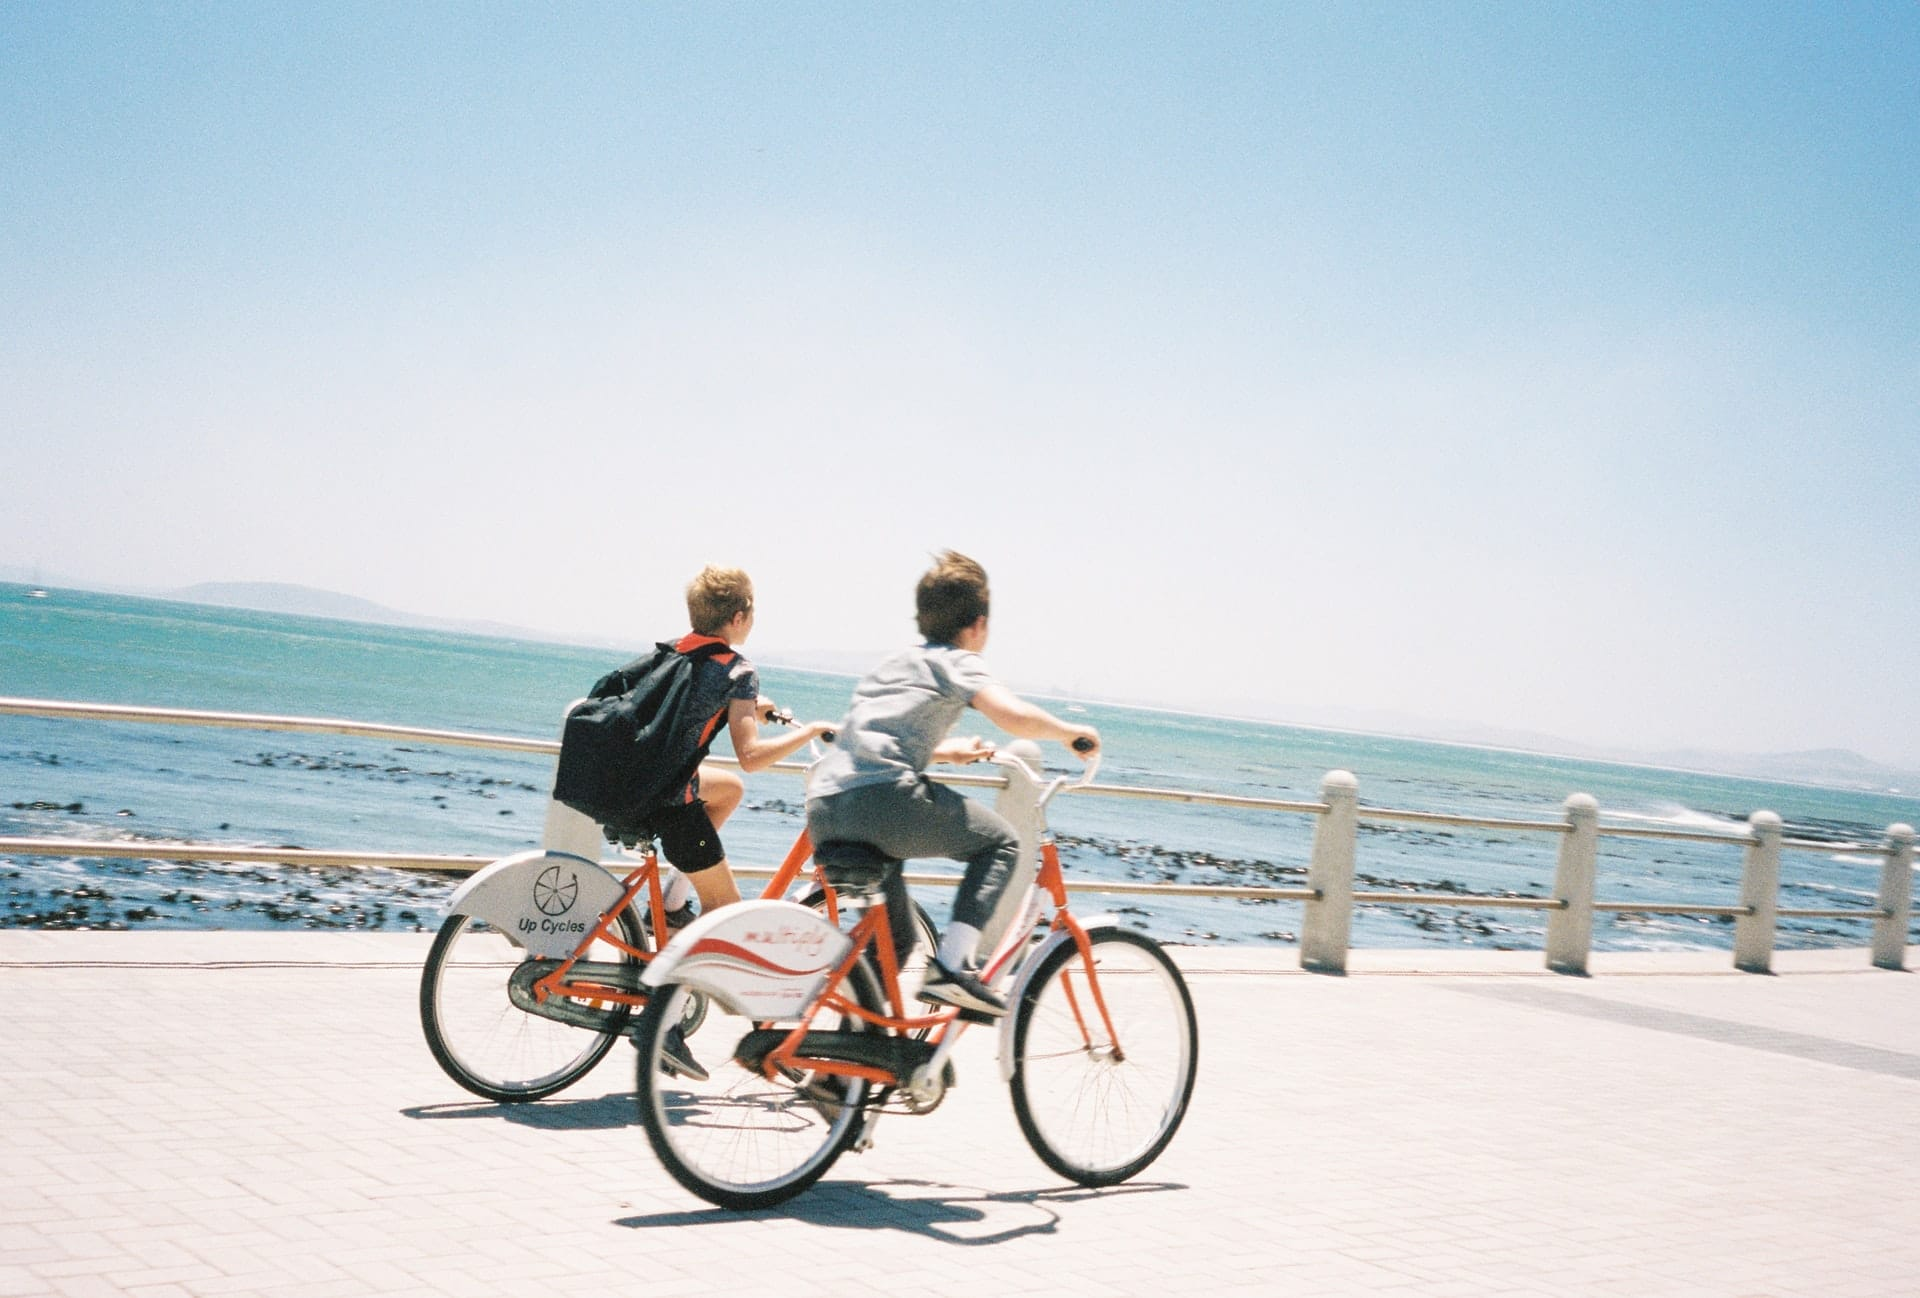 daniel way JlE9Zfd7ZO8 unsplash - How Your Toddler Can Be Part of the Family Road Trip